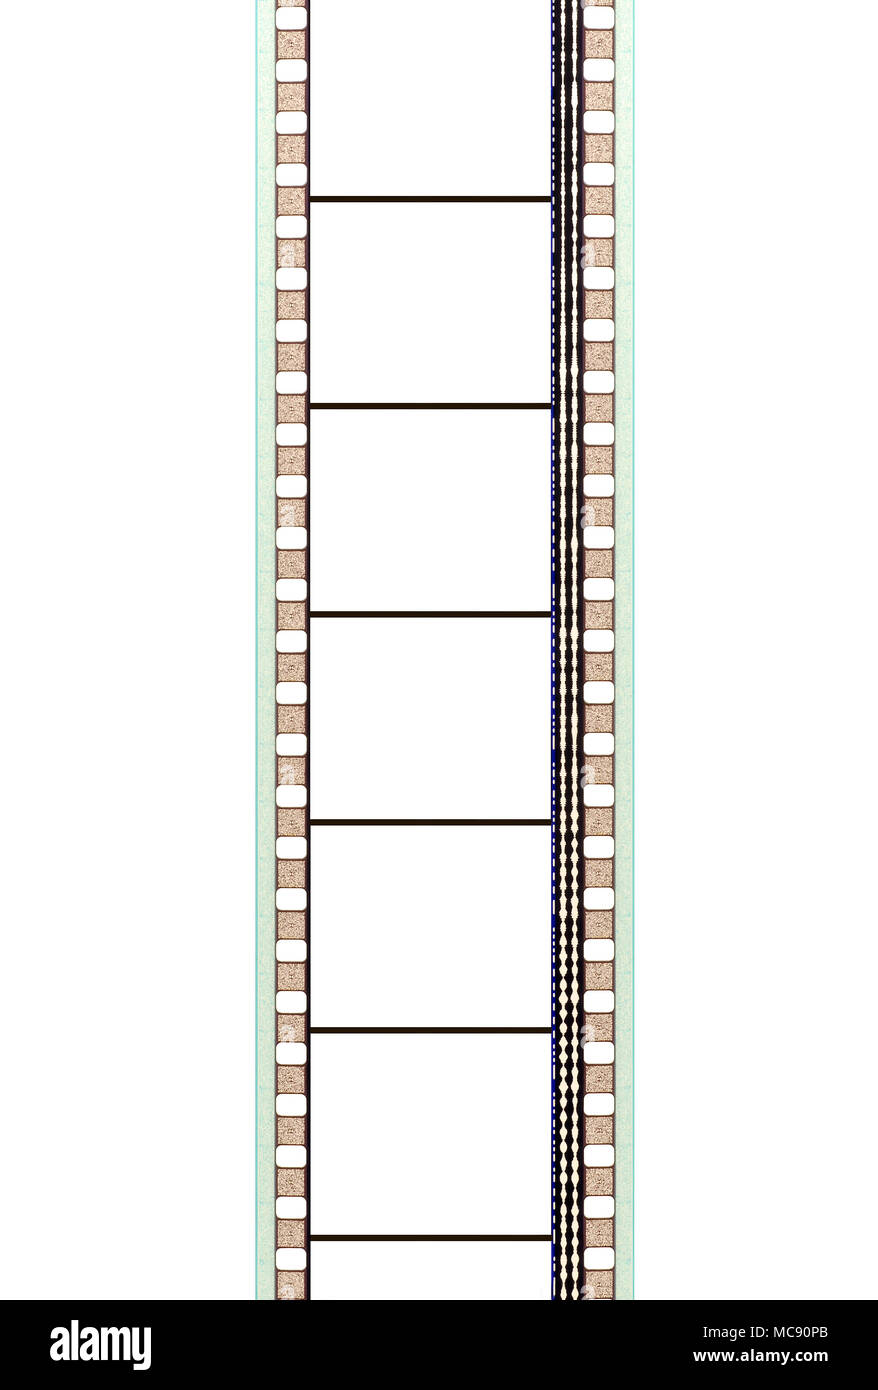 35mm movie film strip with soundtrack and blank frames Stock Photo ...